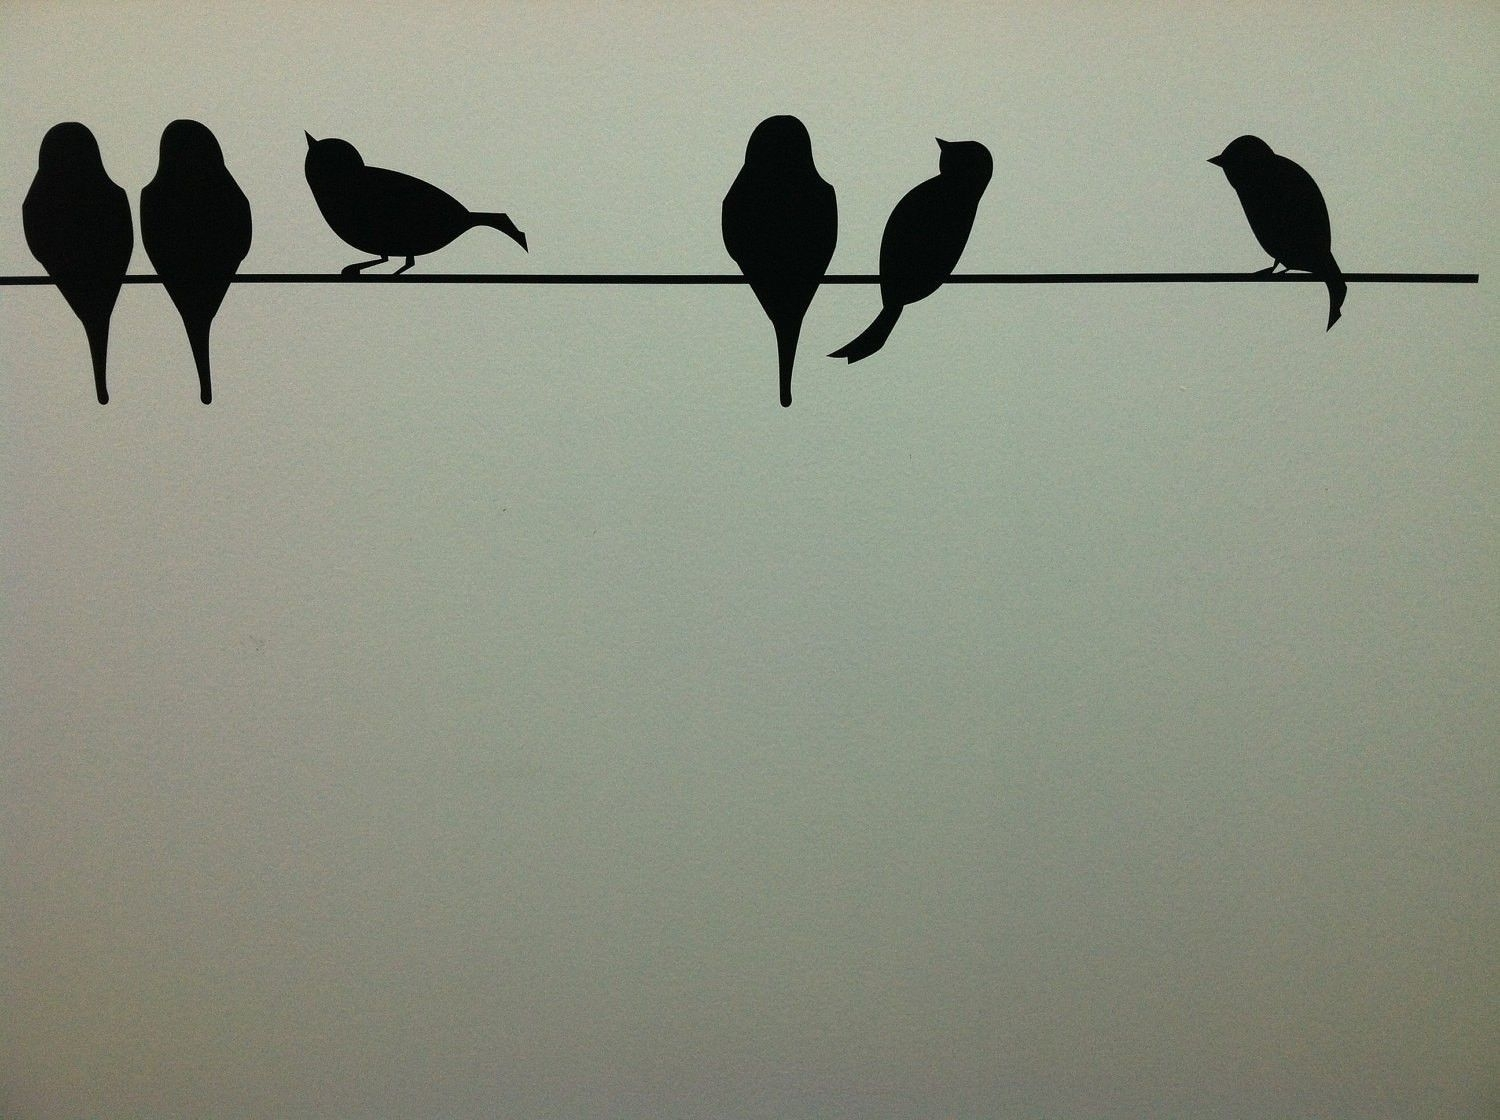 Awesome Birds On A Wire Wall Decor Unique Vinyl Lettering Art Pict Inside Best And Newest Birds On A Wire Wall Art (View 2 of 20)